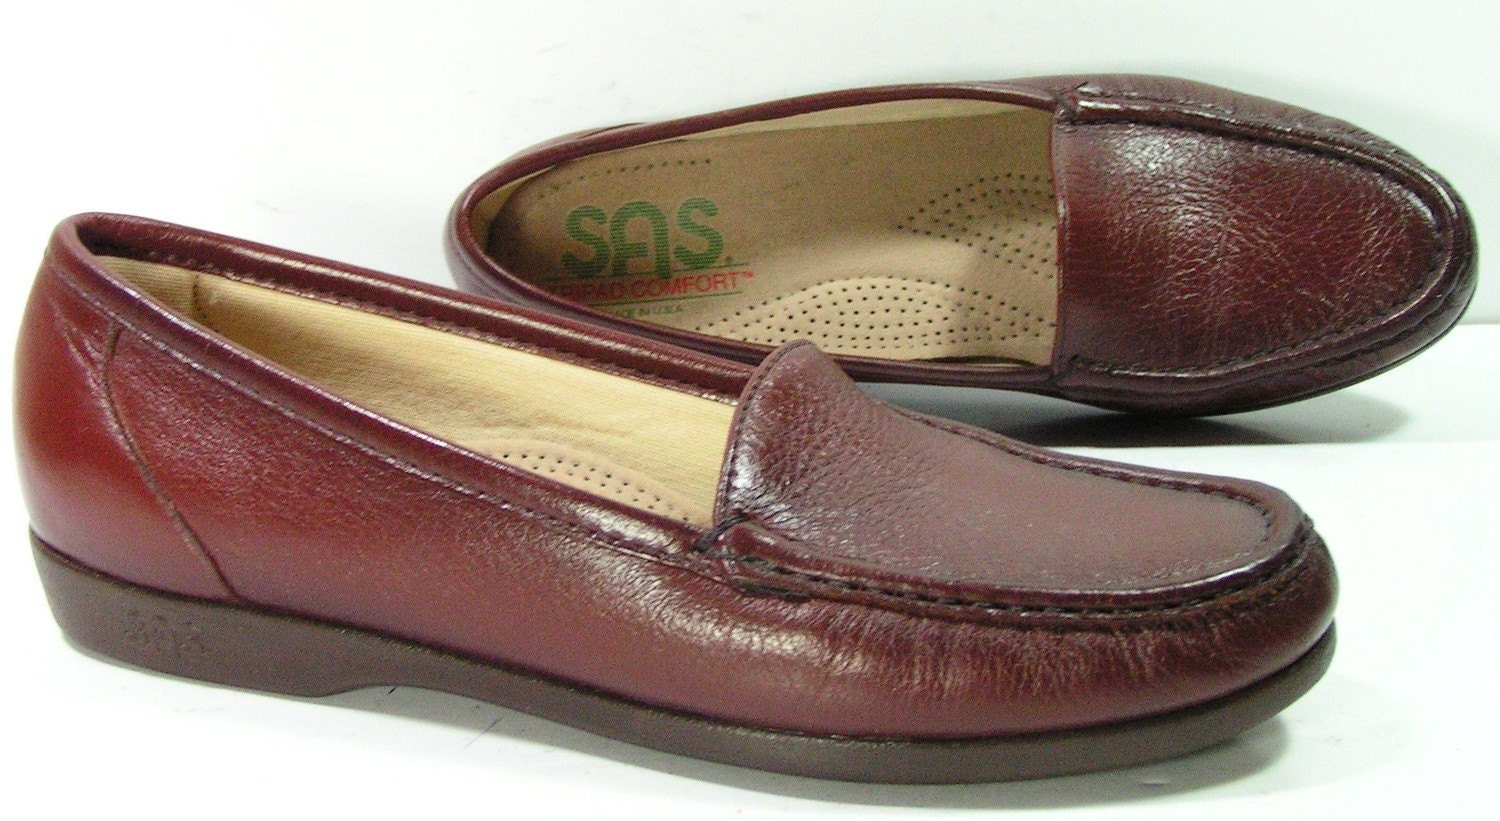 New Mens Shoes From Sas